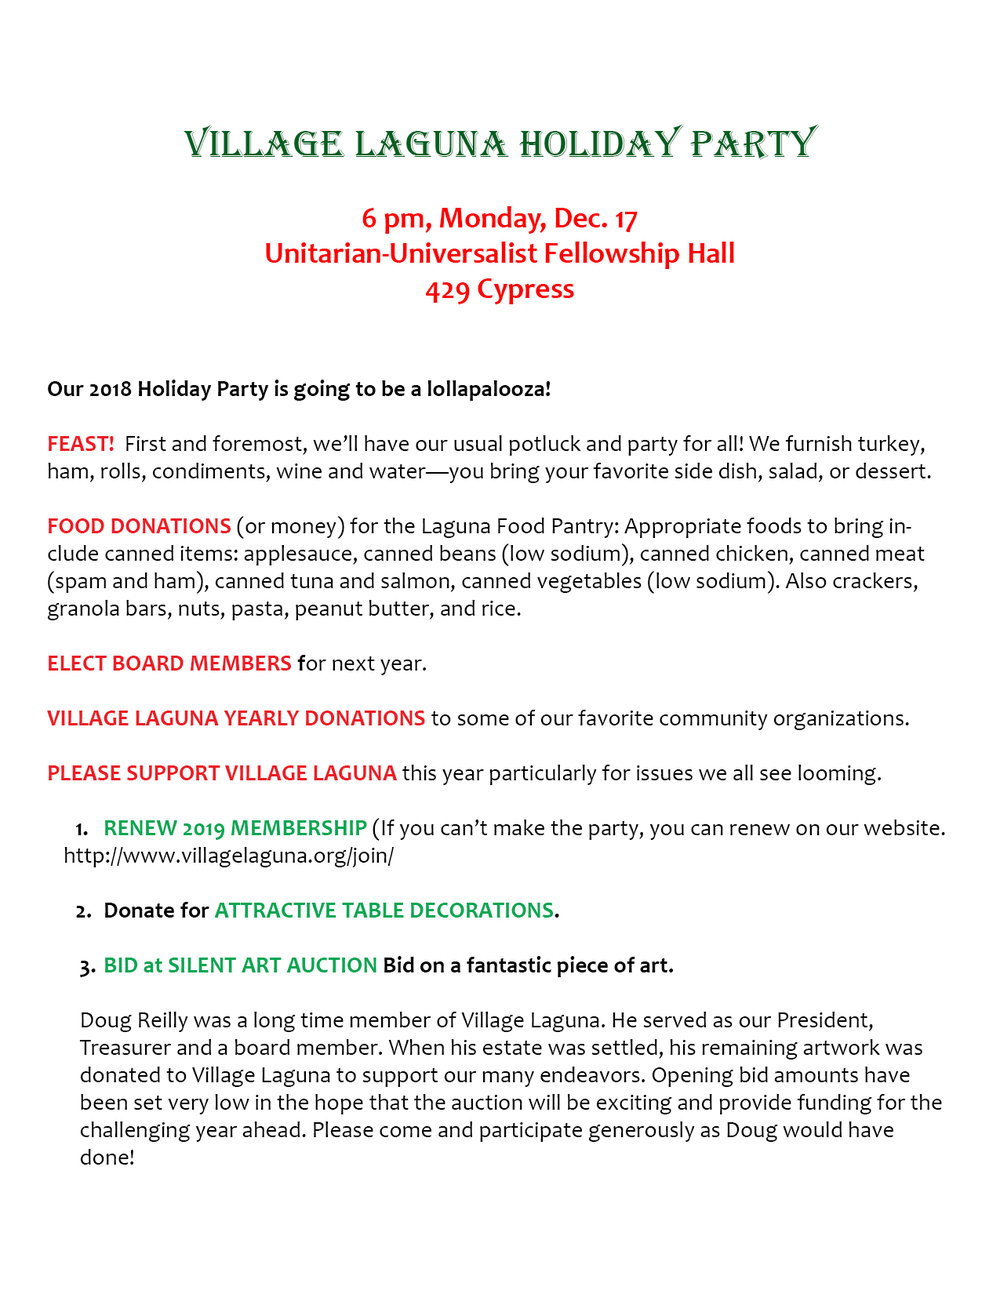 Art auction and xmas party announcement.jpg